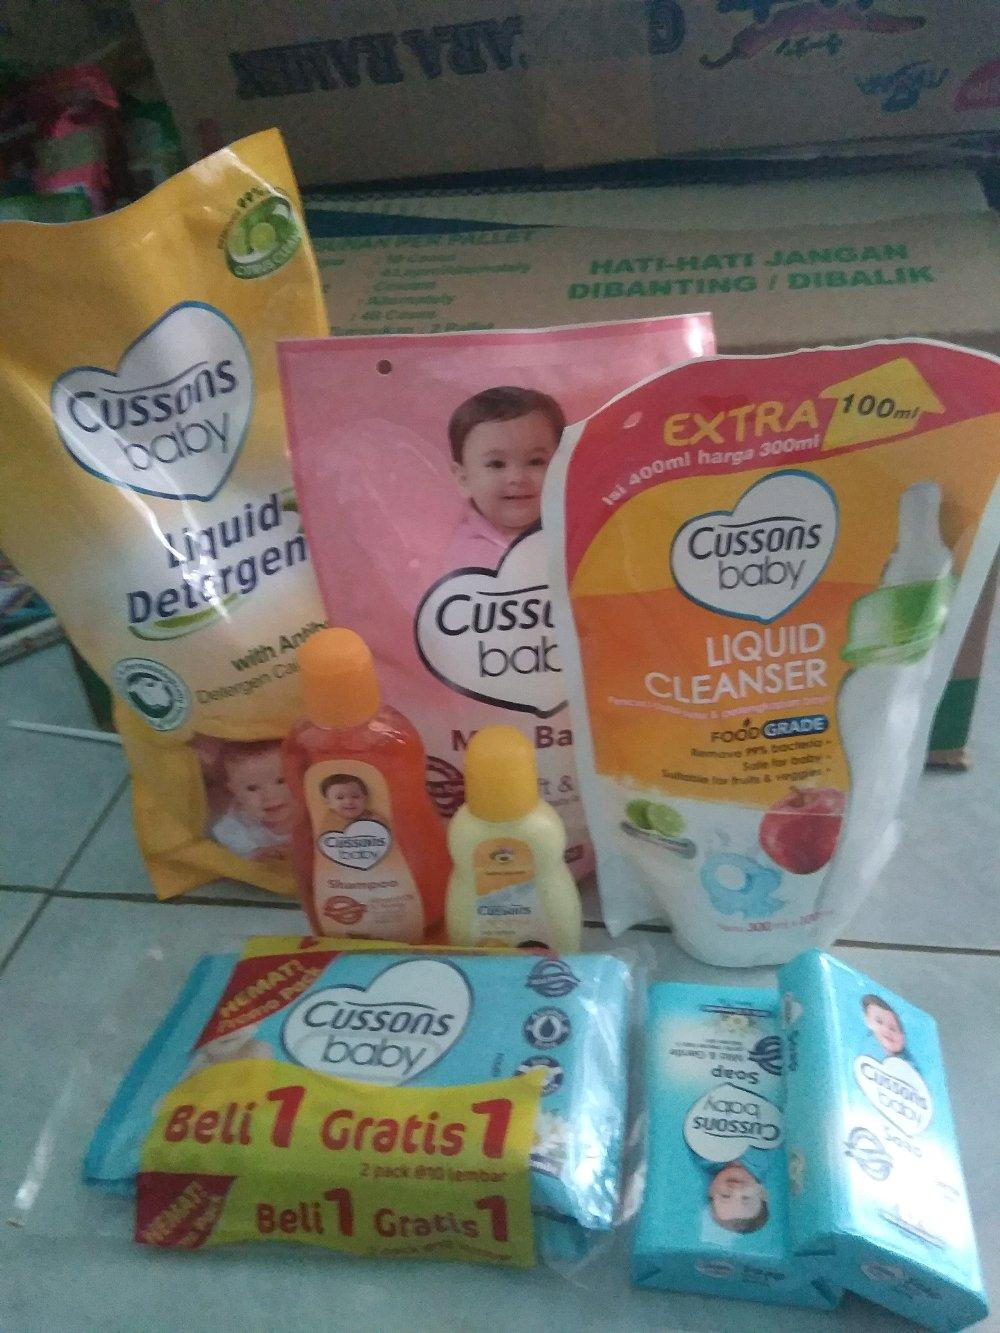 Buy Sell Cheapest Cussons Gift Set Best Quality Product Deals Baby Mini Bag Daily Care Tersedia 3 Variant Paket